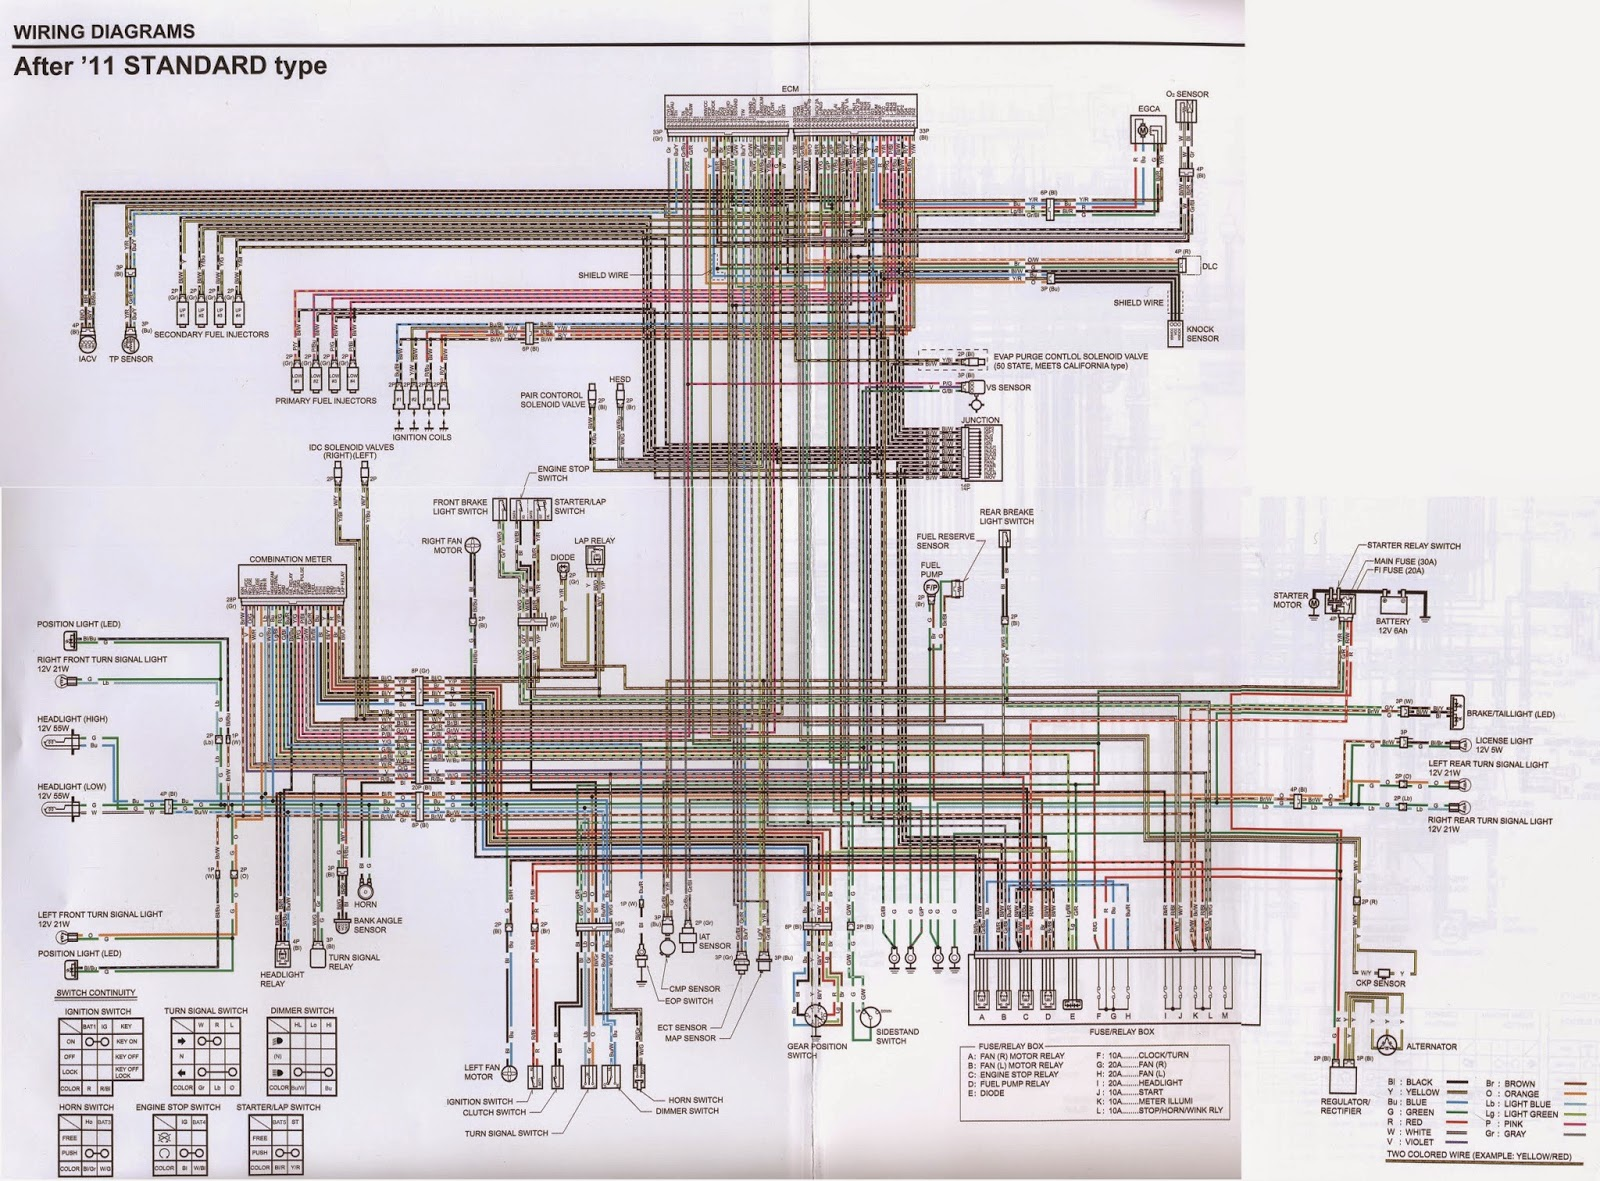 Cbr1000rr Wiring Diagram Just Another Data 2006 Xr650l